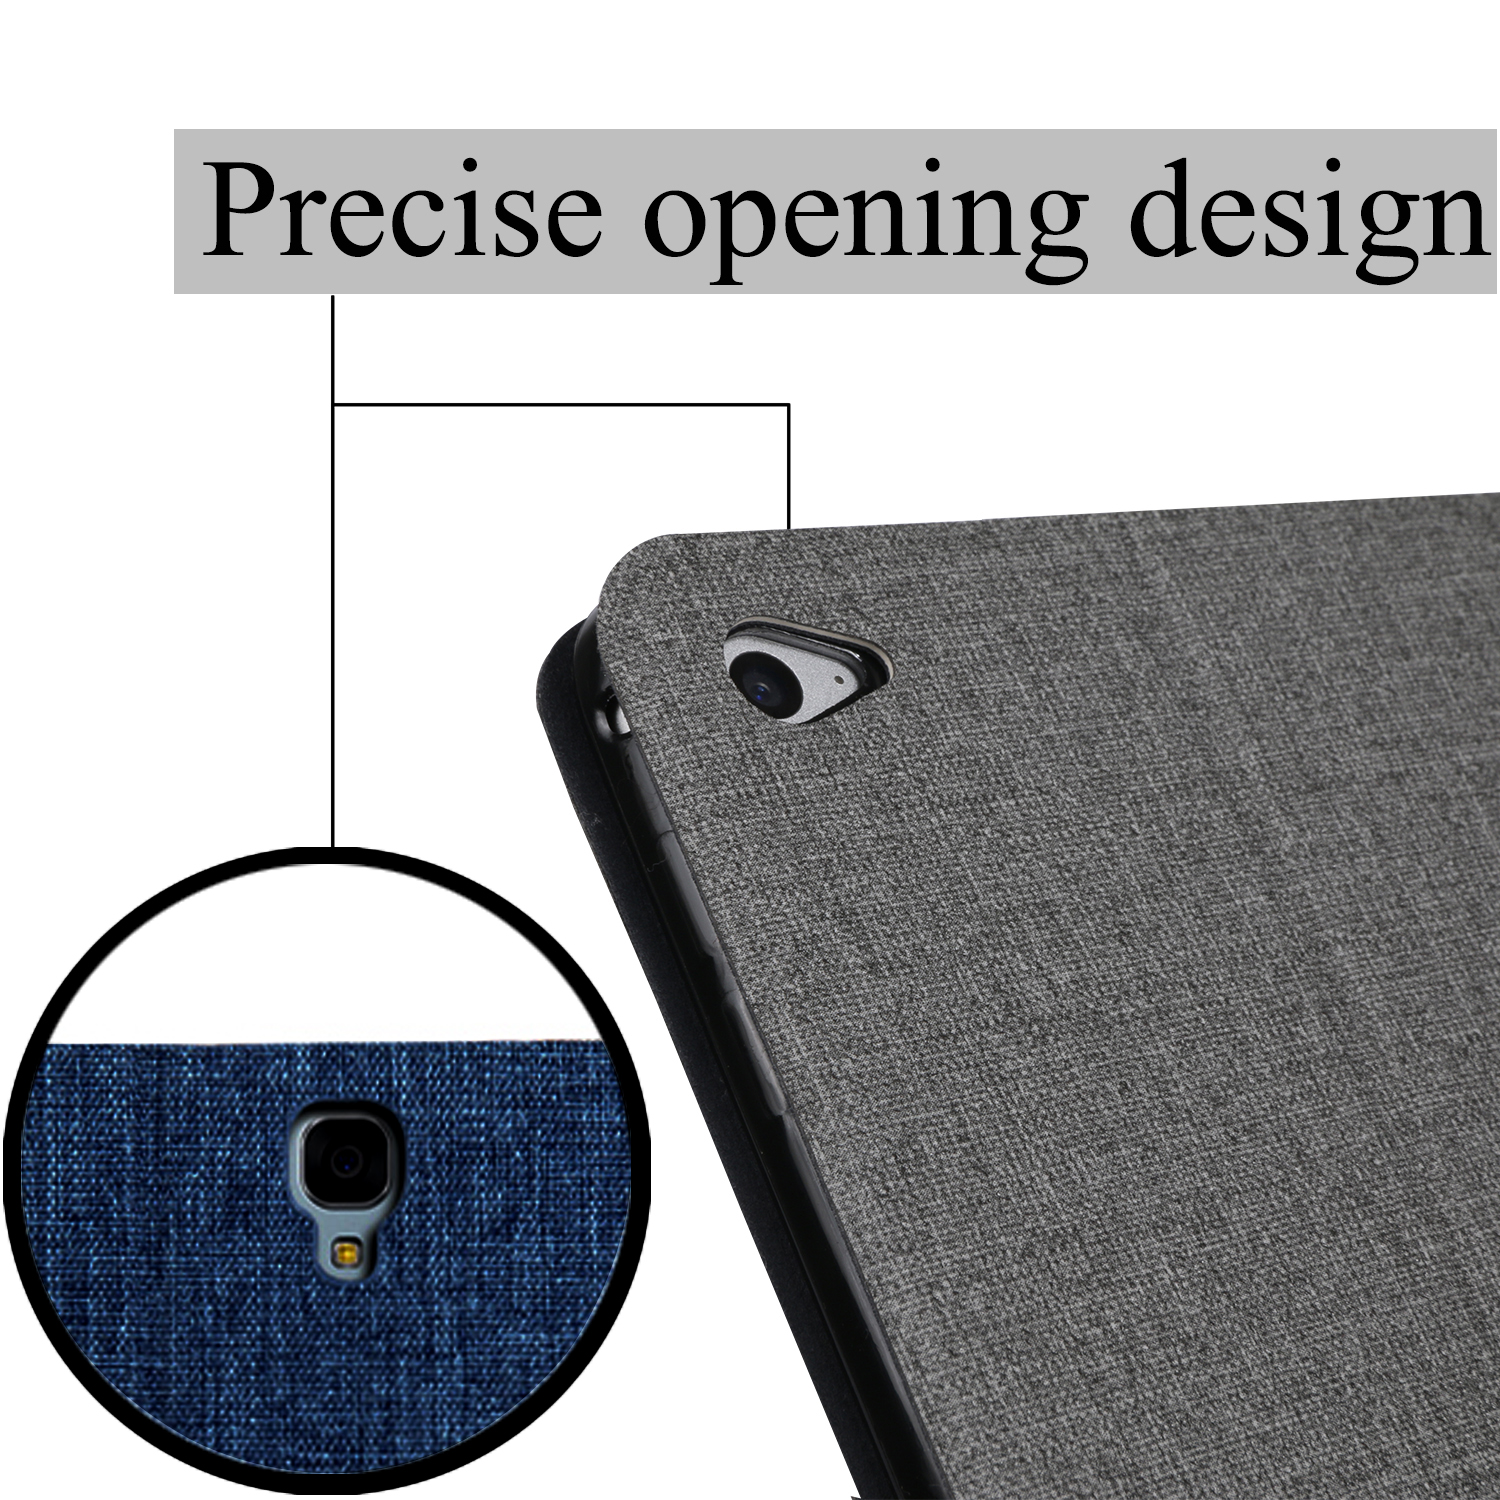 tablet flip case for Samsung Galaxy Tab 3 Lite 7 0 quot protective Stand Cover Silicone soft shell fundas capa for T110 T111 T113 in Tablets amp e Books Case from Computer amp Office